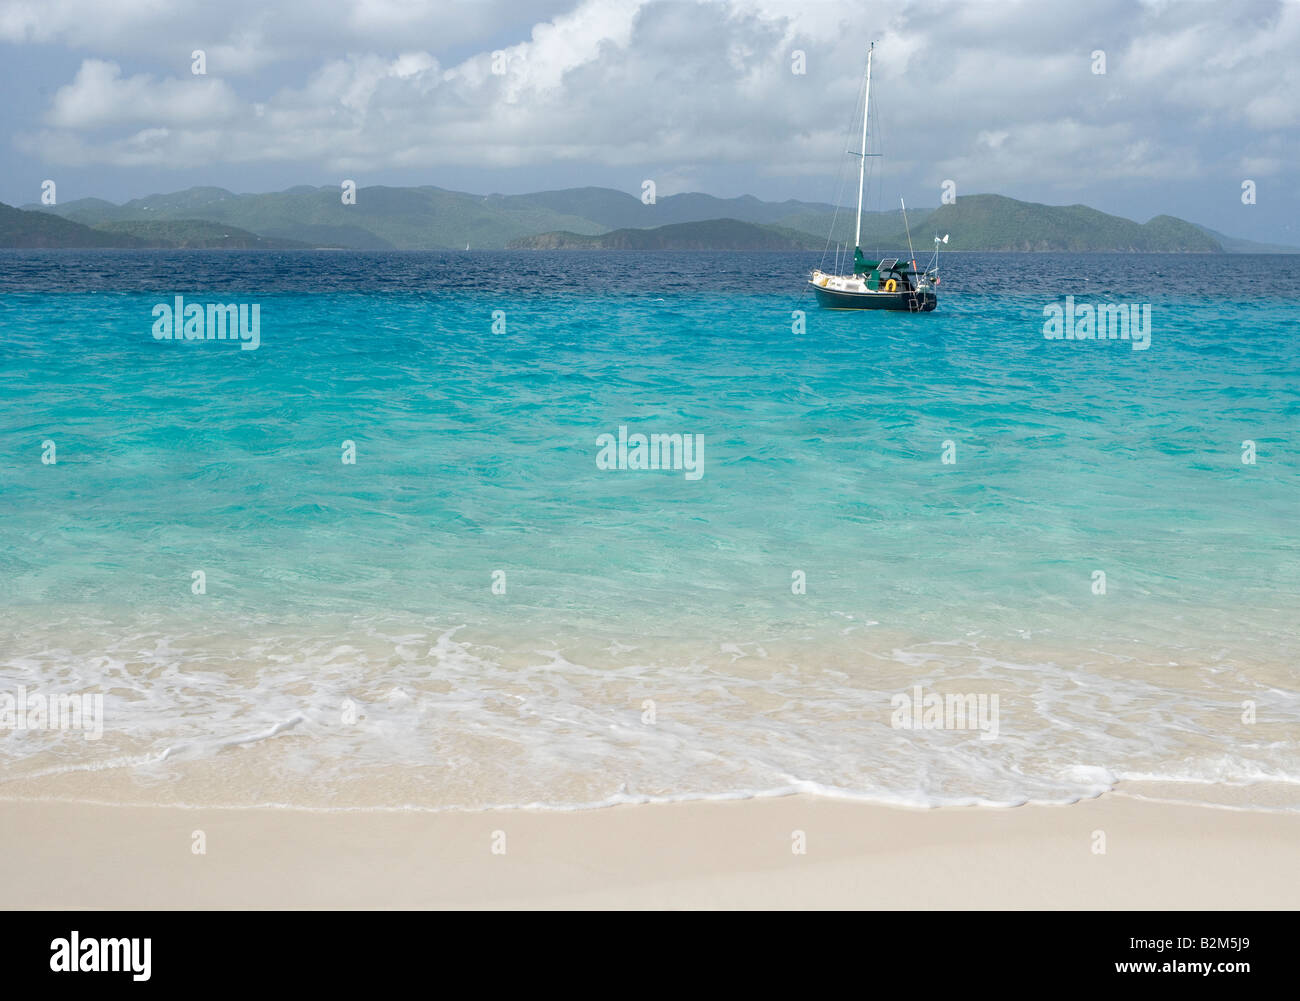 A cruising sailboat anchored next to Sandy Cay in the British Virgin Islands St John is visible in the background - Stock Image